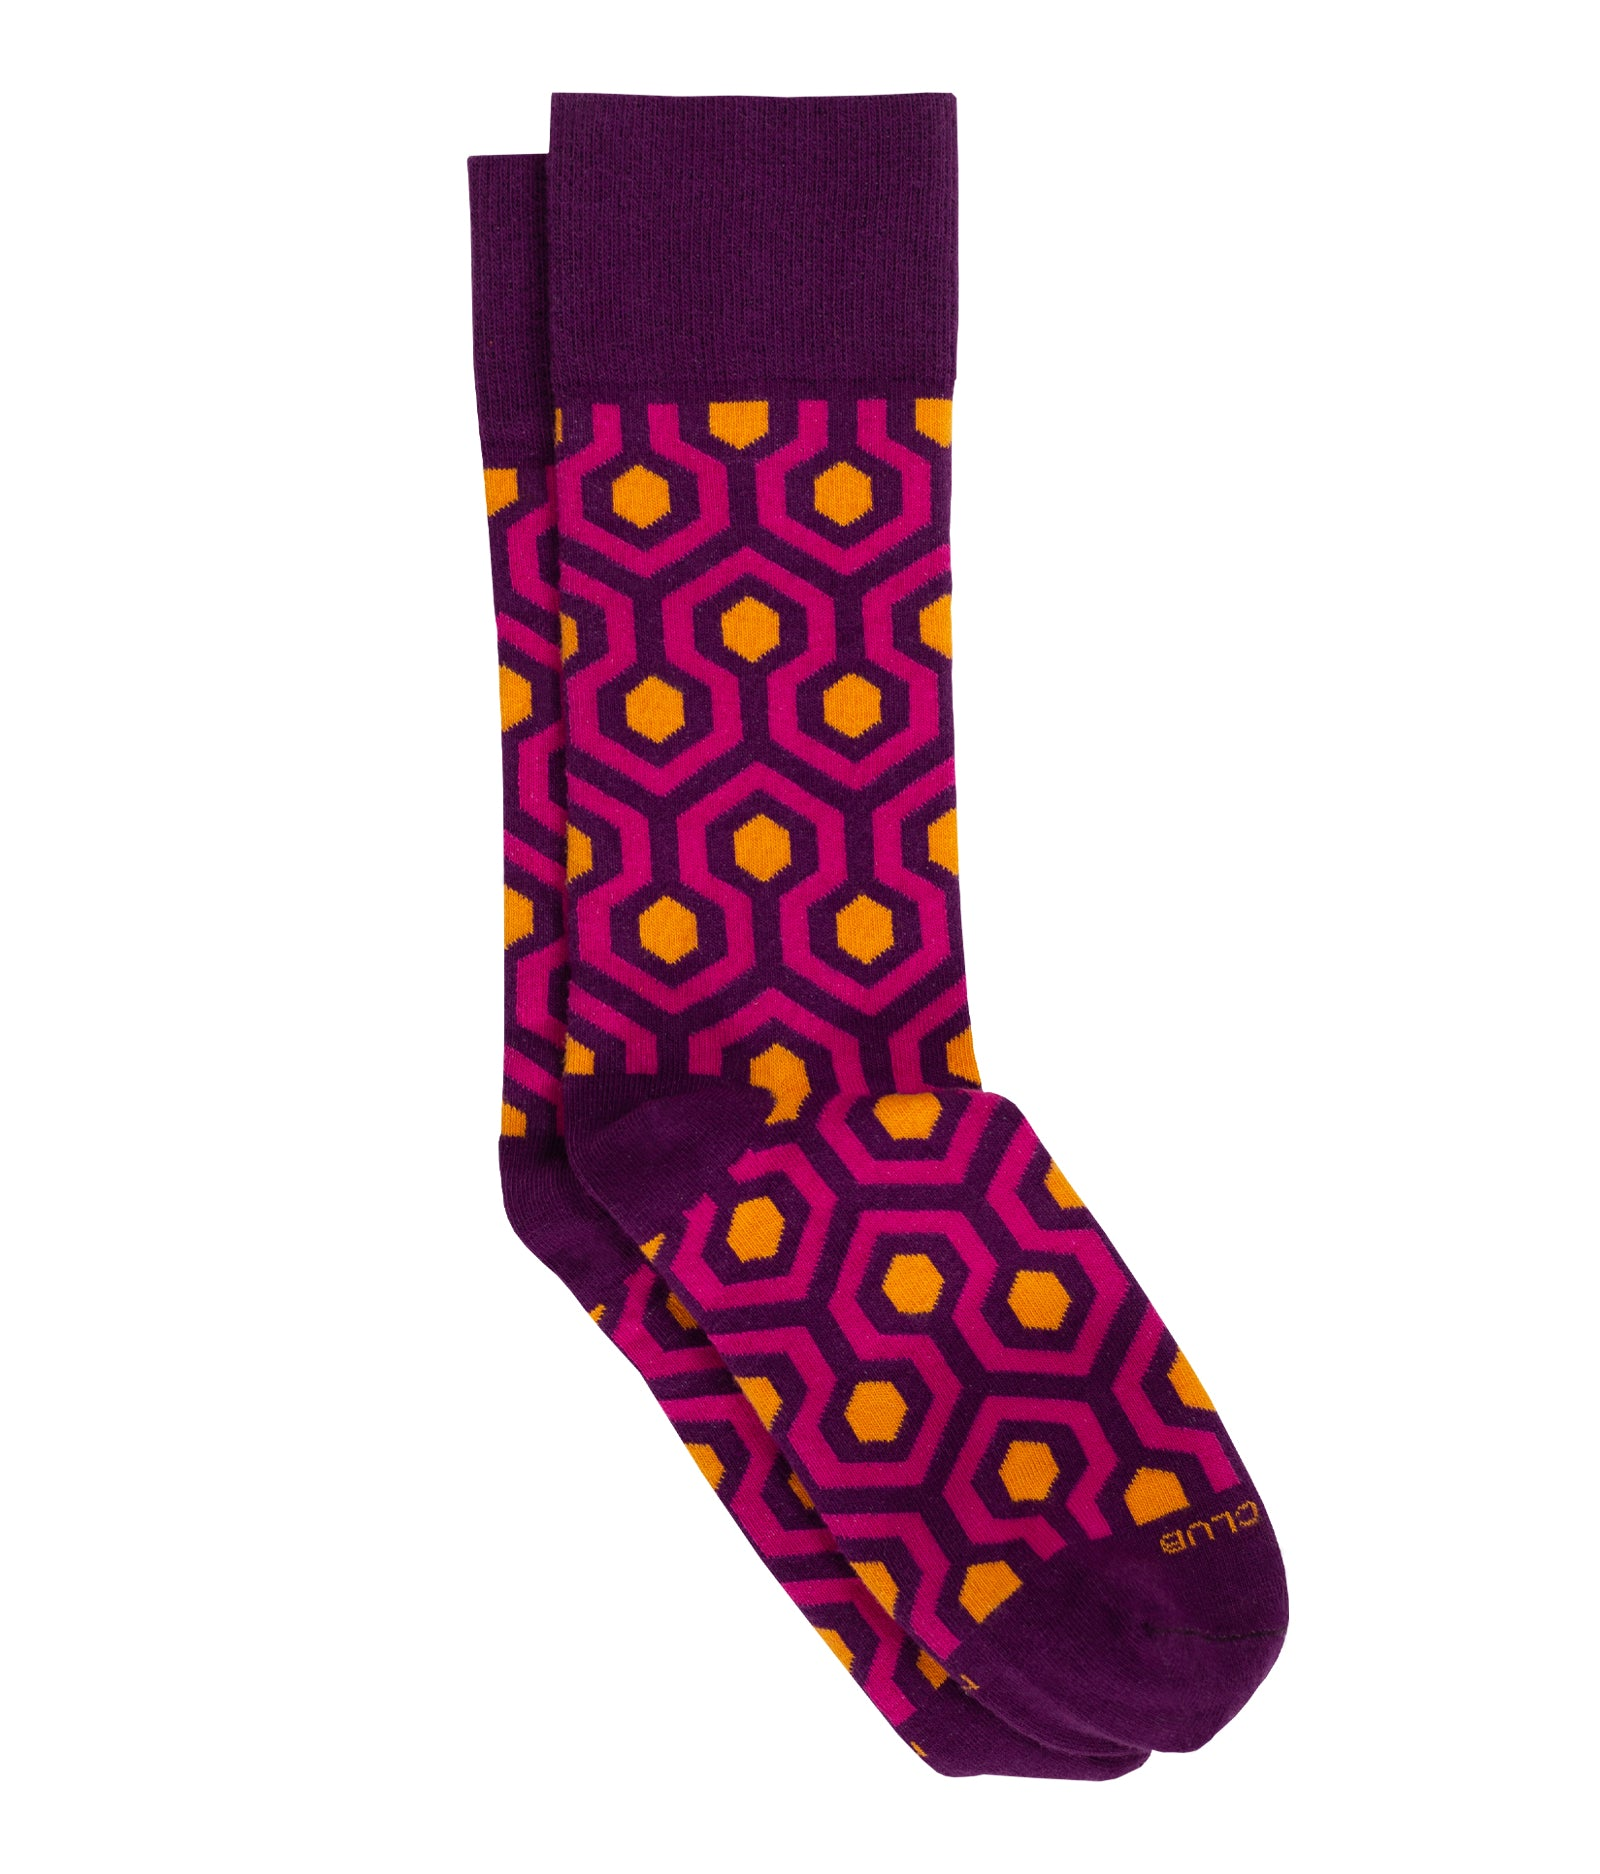 The Timberline - Deep Pink - Sock Club Store